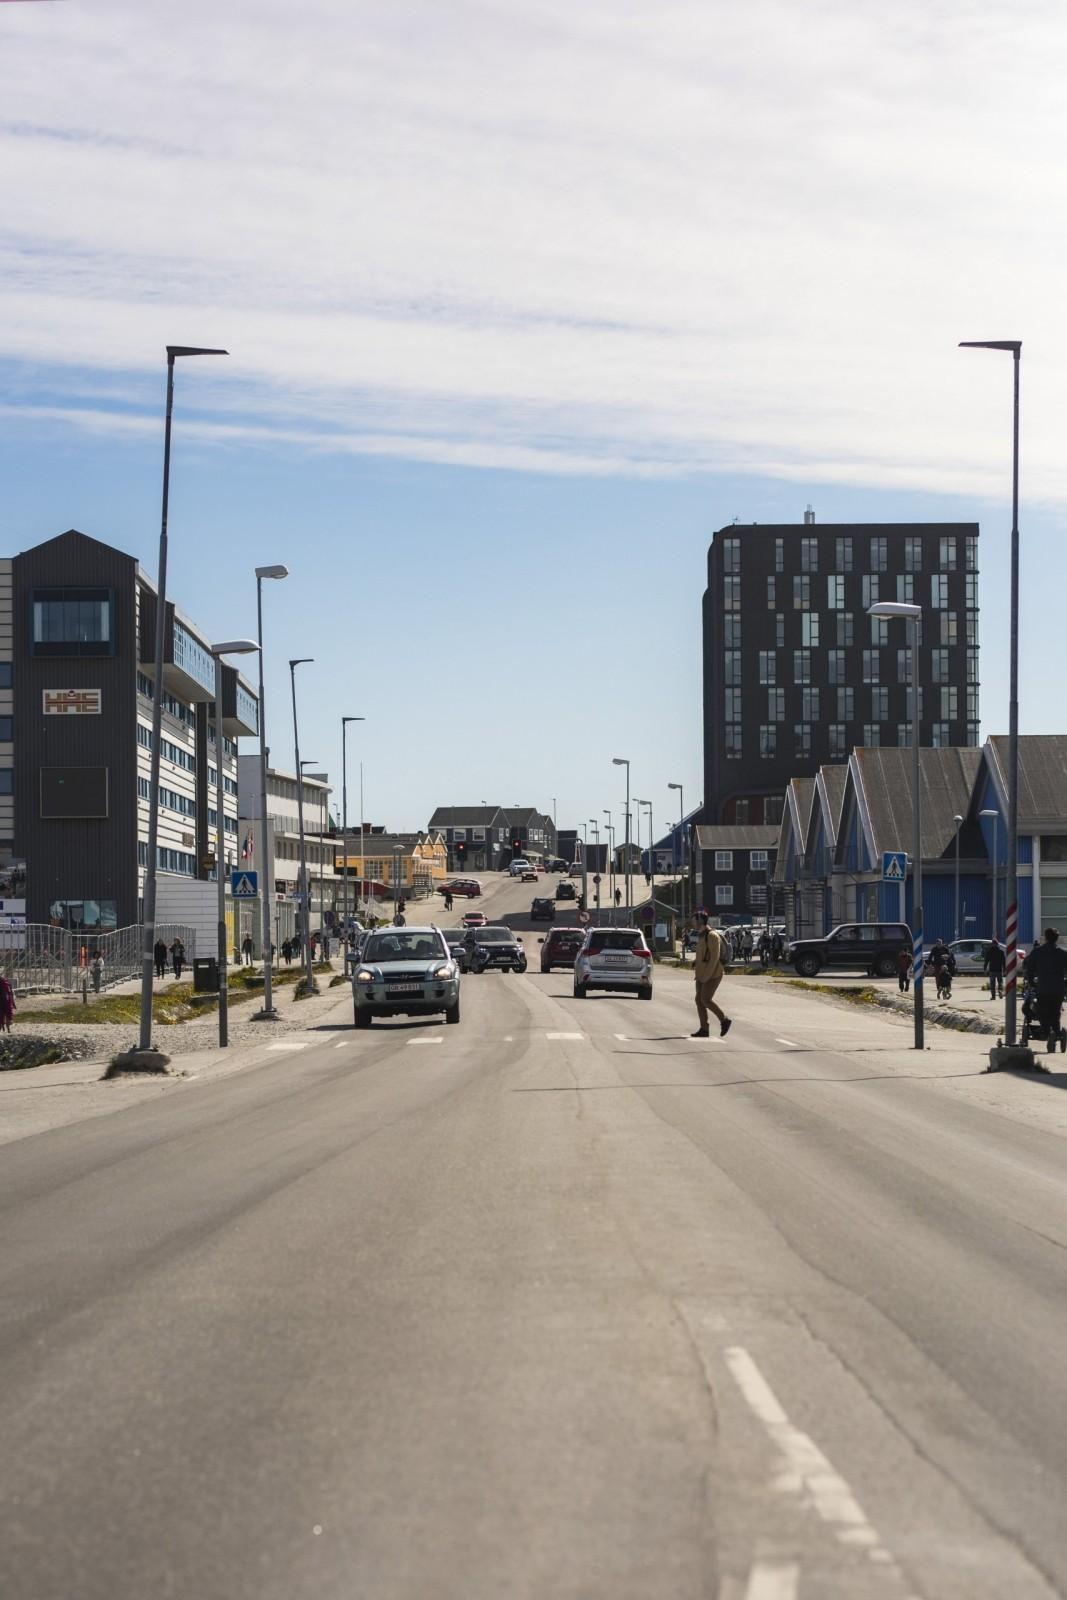 After-Traffic on the main road in Nuuk